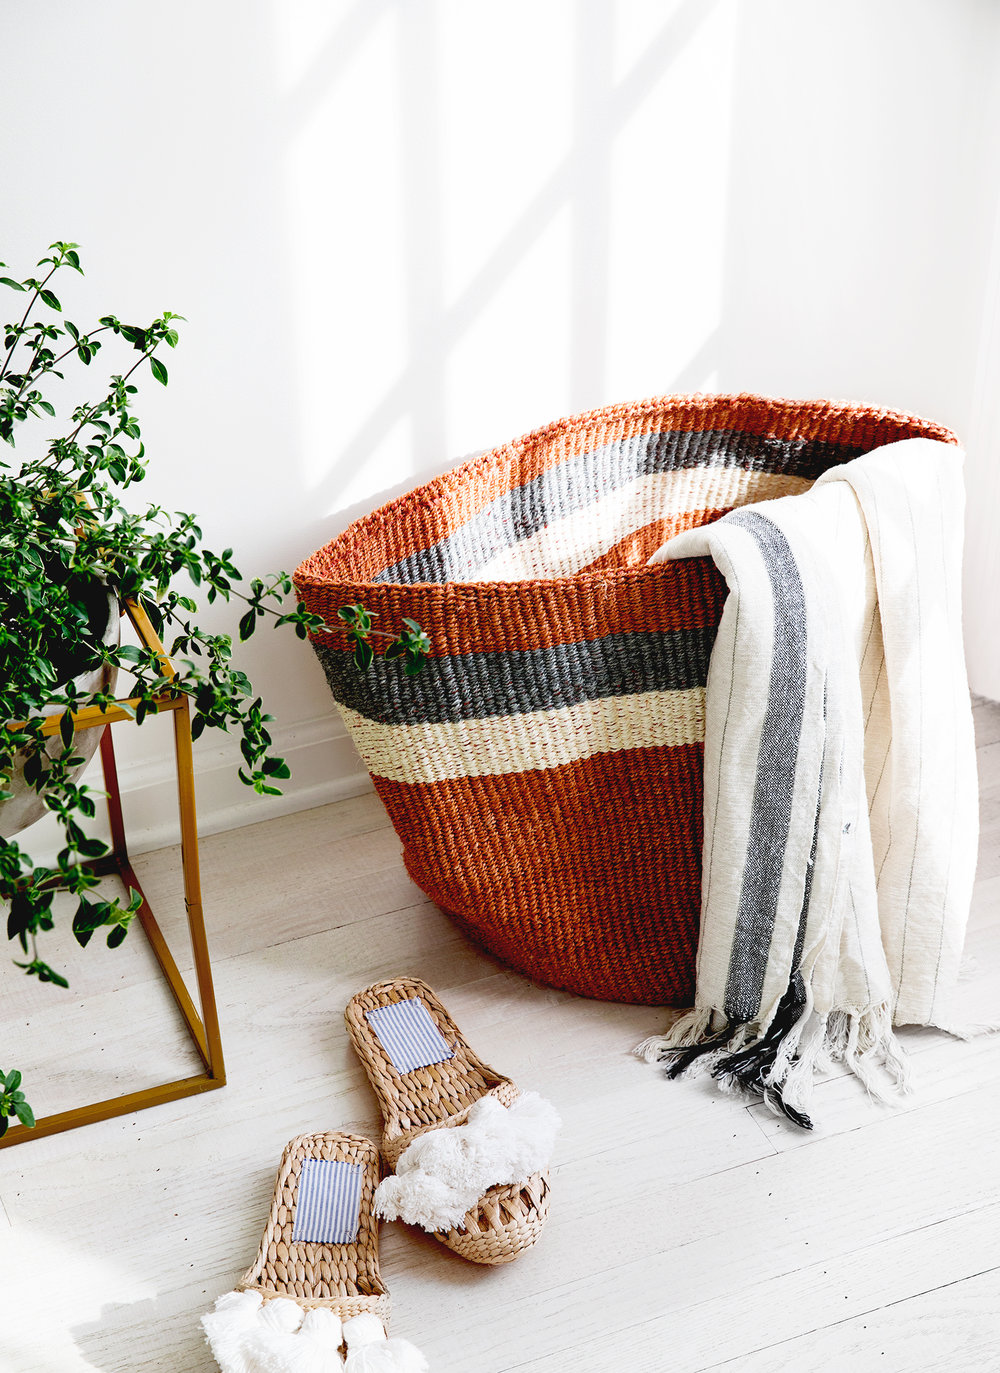 warming the home - beautiful + useful gift inspiration